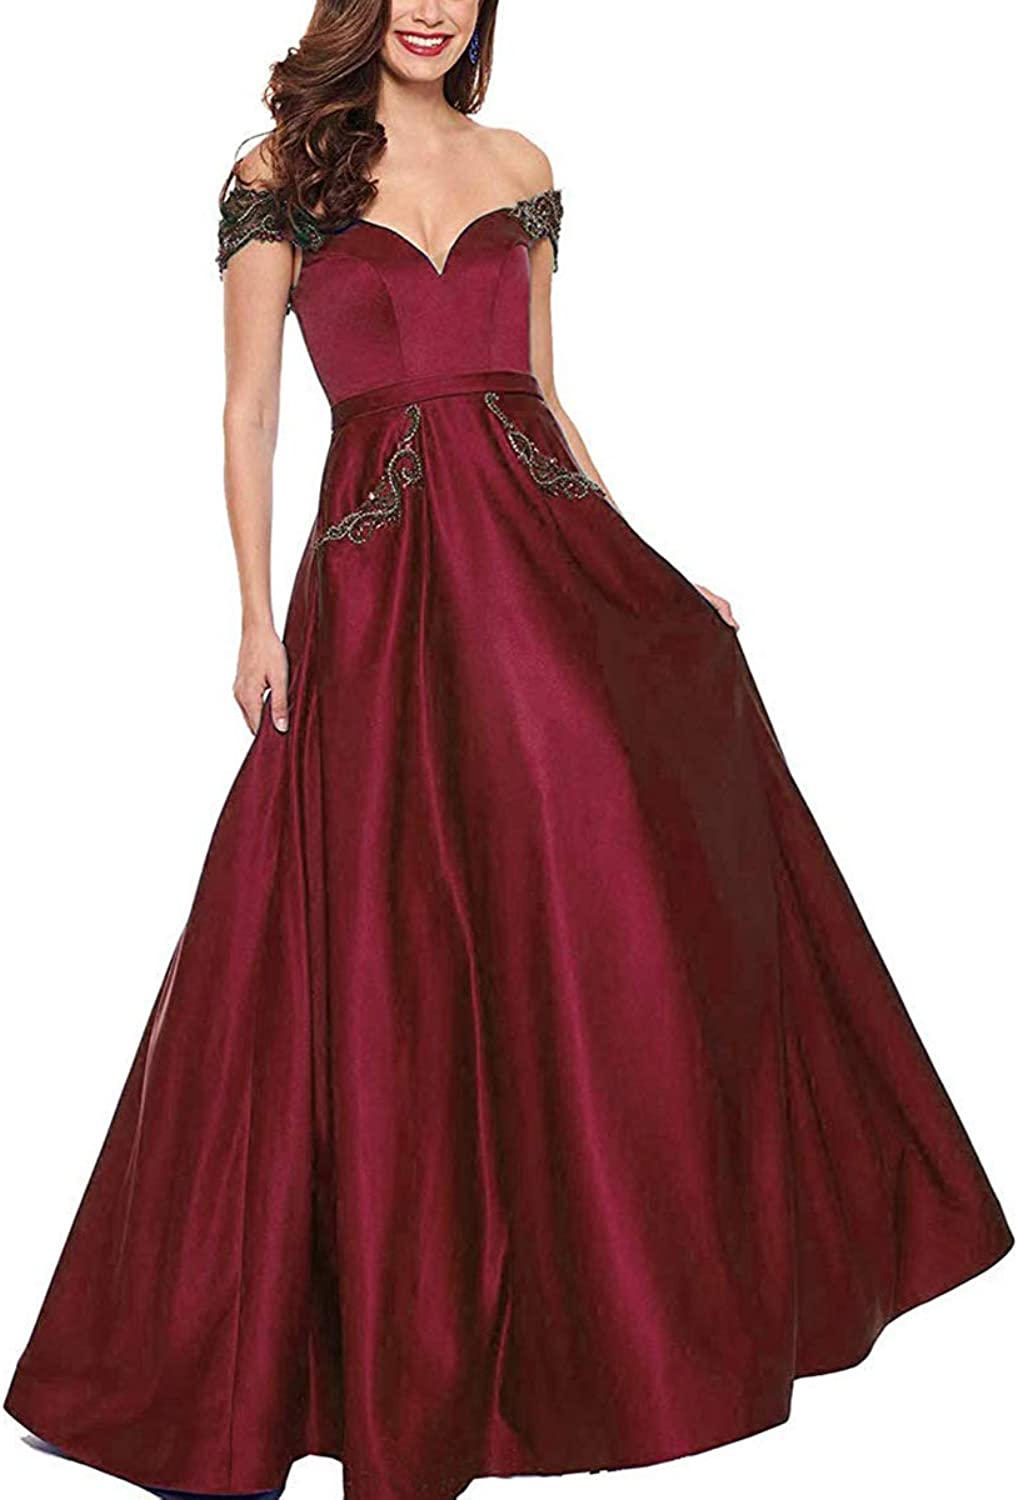 Cap Shoulder Prom Gown Satin V Neck Beaded Aline Formal Evening Dresses with Pockets